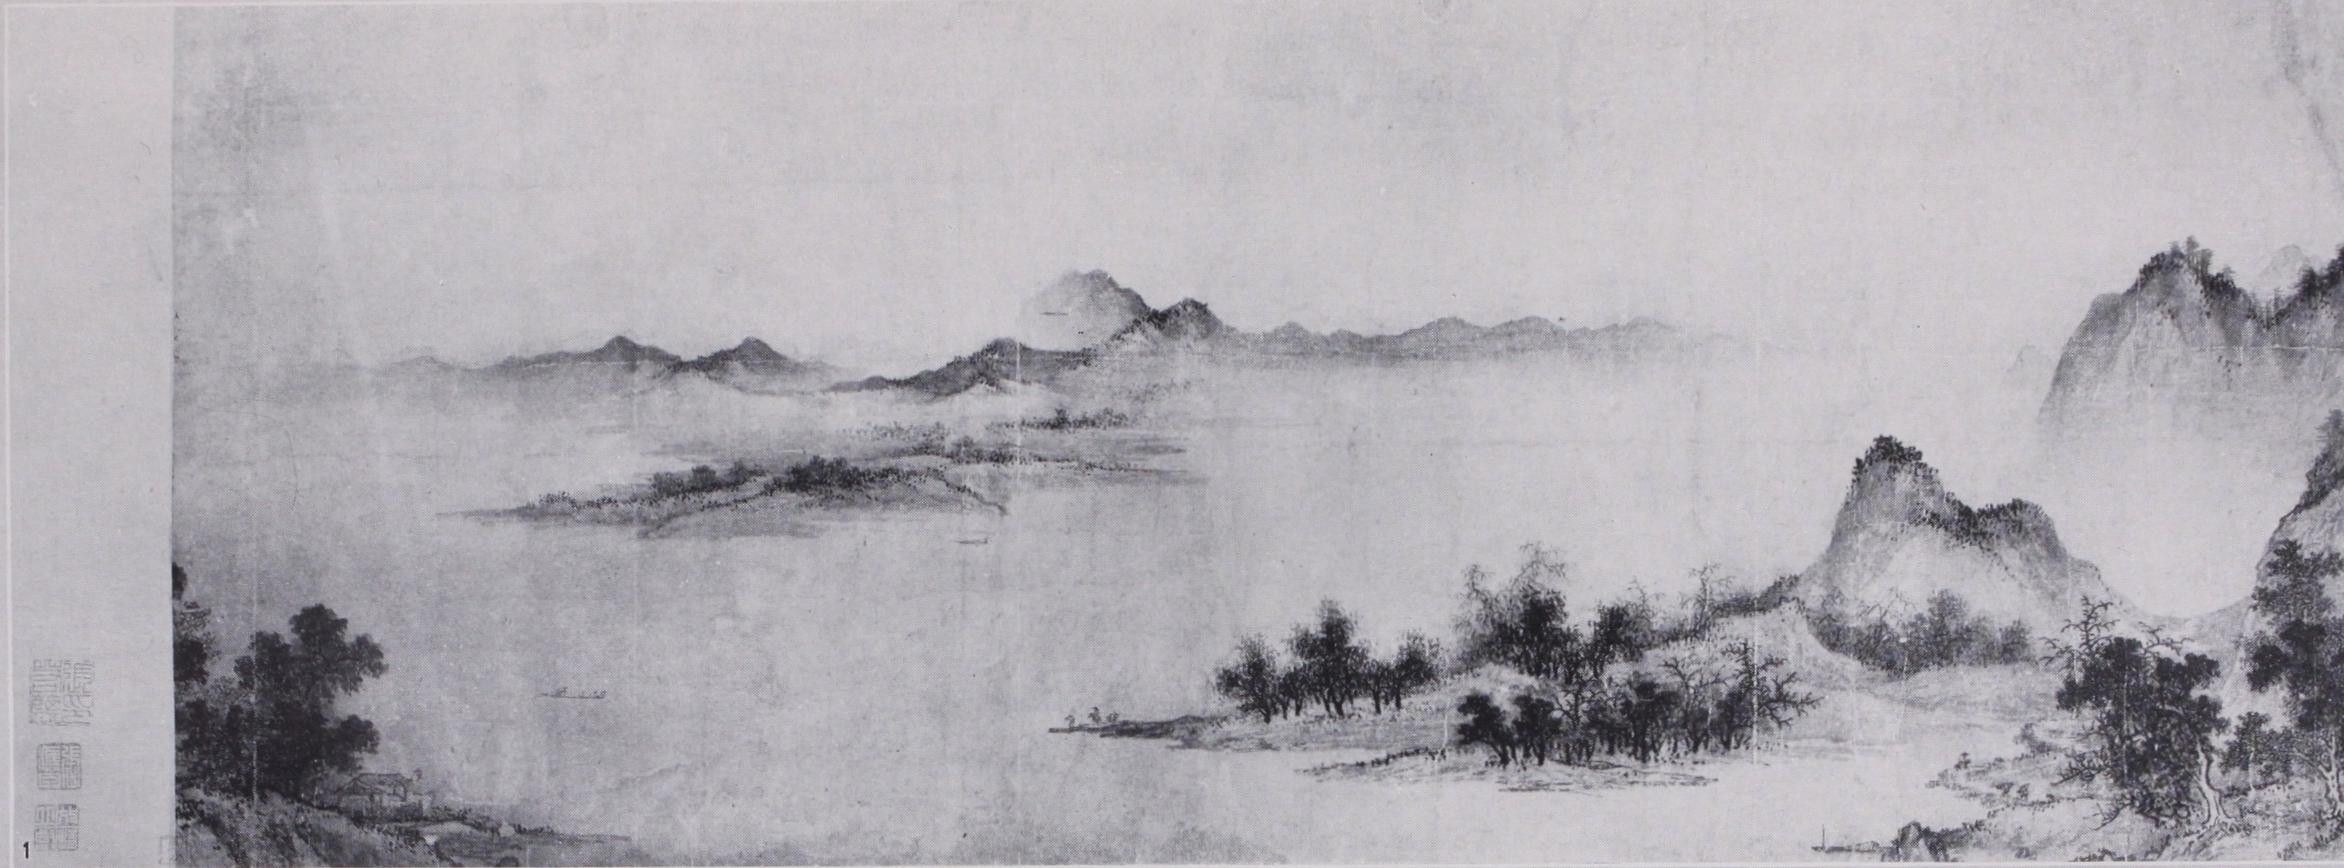 Wonderful Japanese Landscape Ink Painting Pictures Inspiration